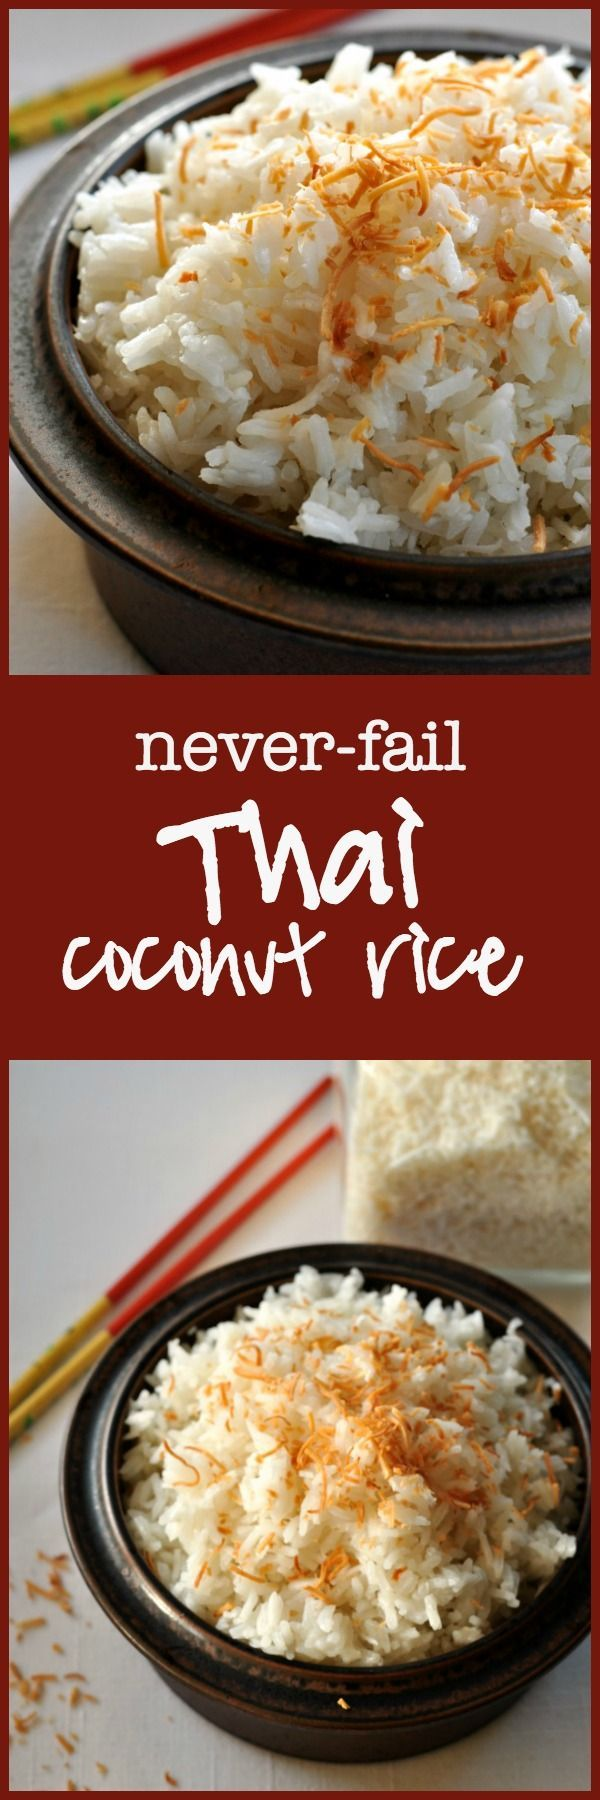 Thai Coconut Rice. Turns out perfectly every time.  So easy! Made with Jasmine rice, this dish has a subtle coconut flavour. via @enessman